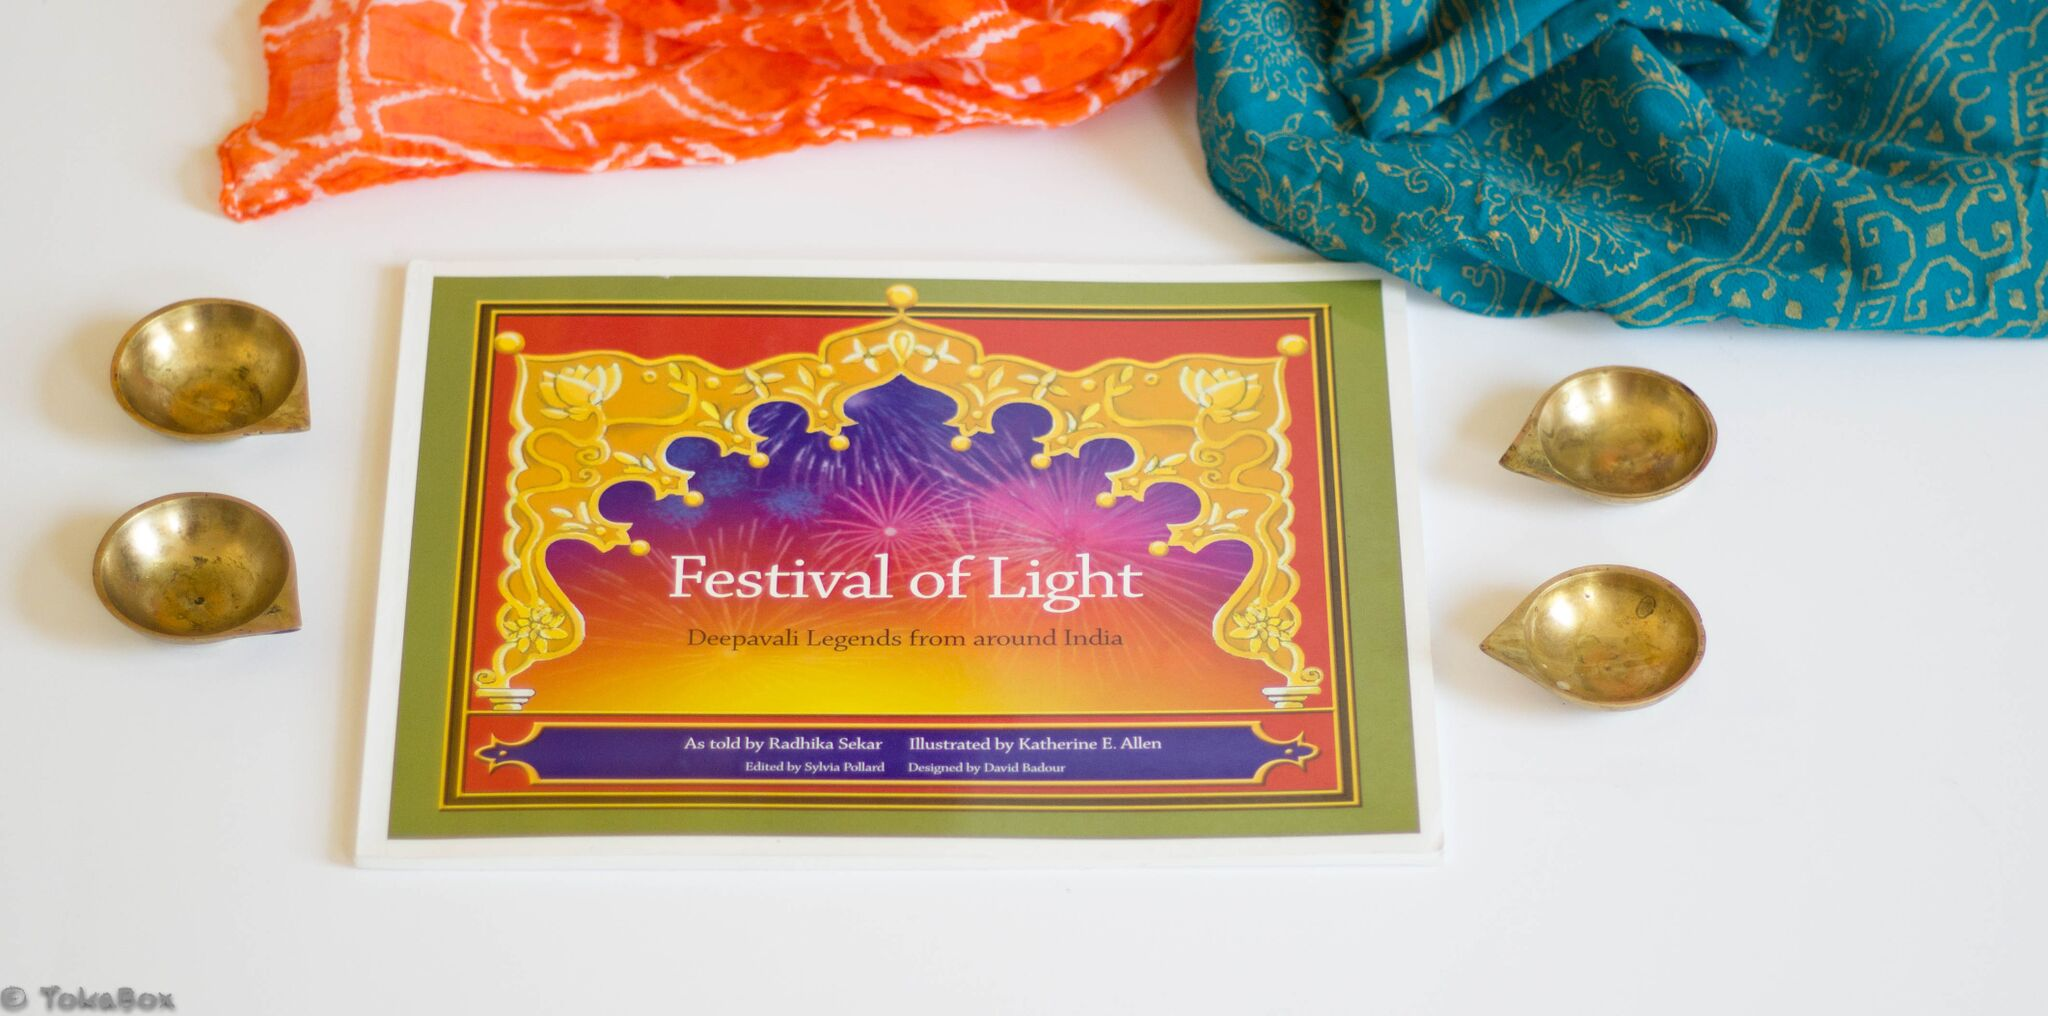 Festival of Light (Deepavali Legends from Around India)